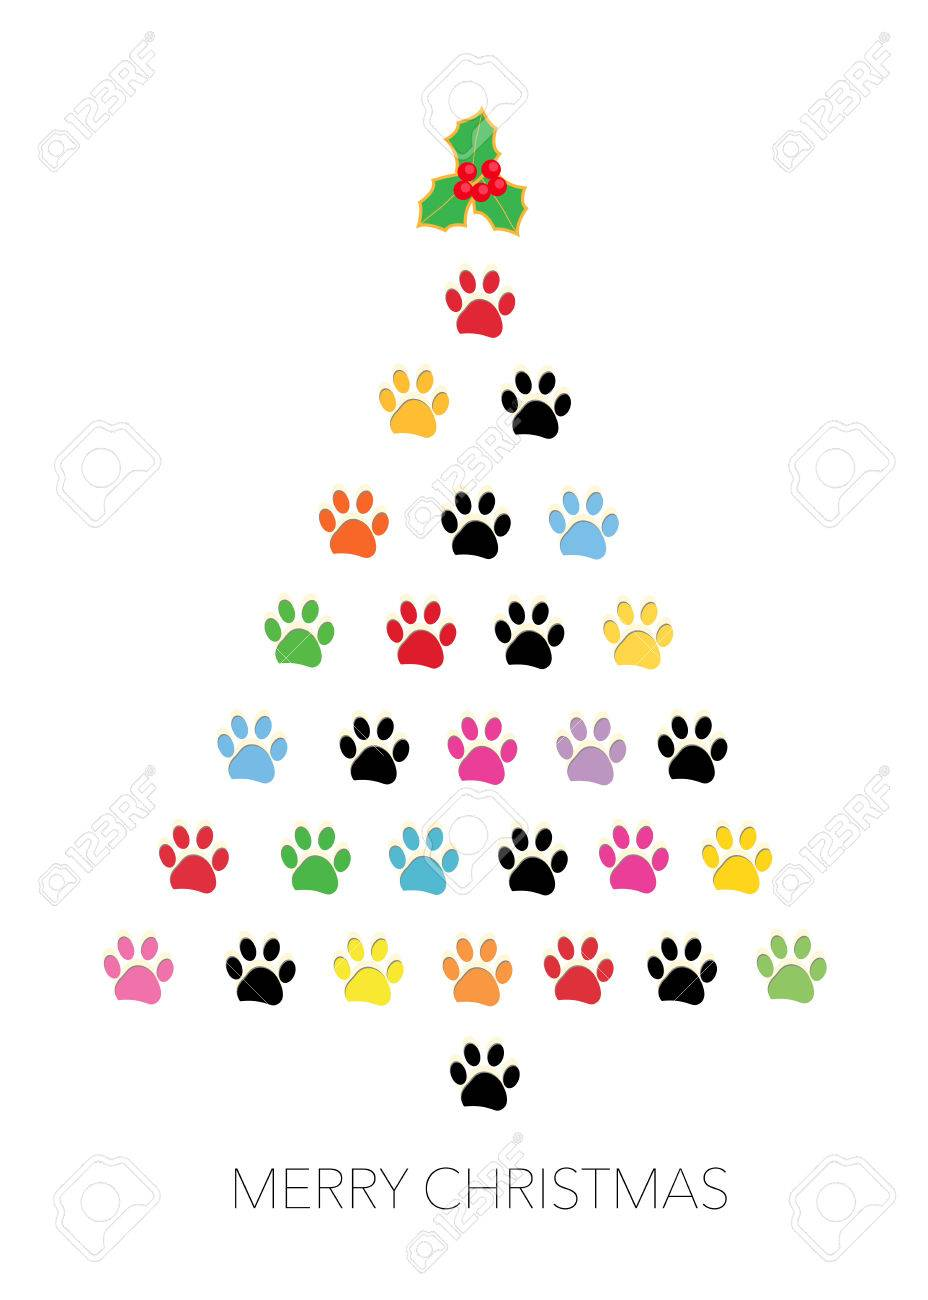 Colorful Paw Print Reem Christmas Greeting Card Vector Illustration Stock  Vector   66080181